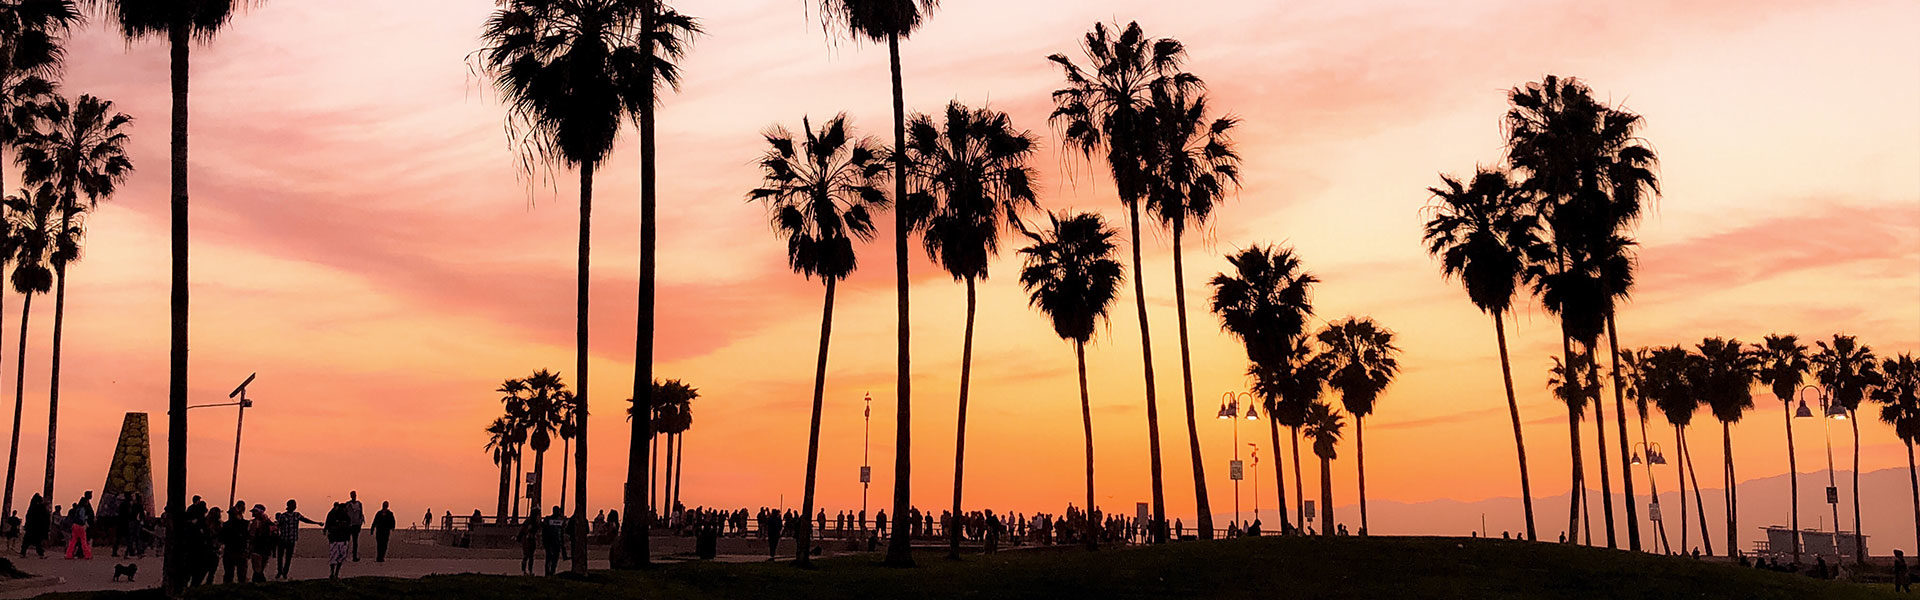 venice beach palm trees